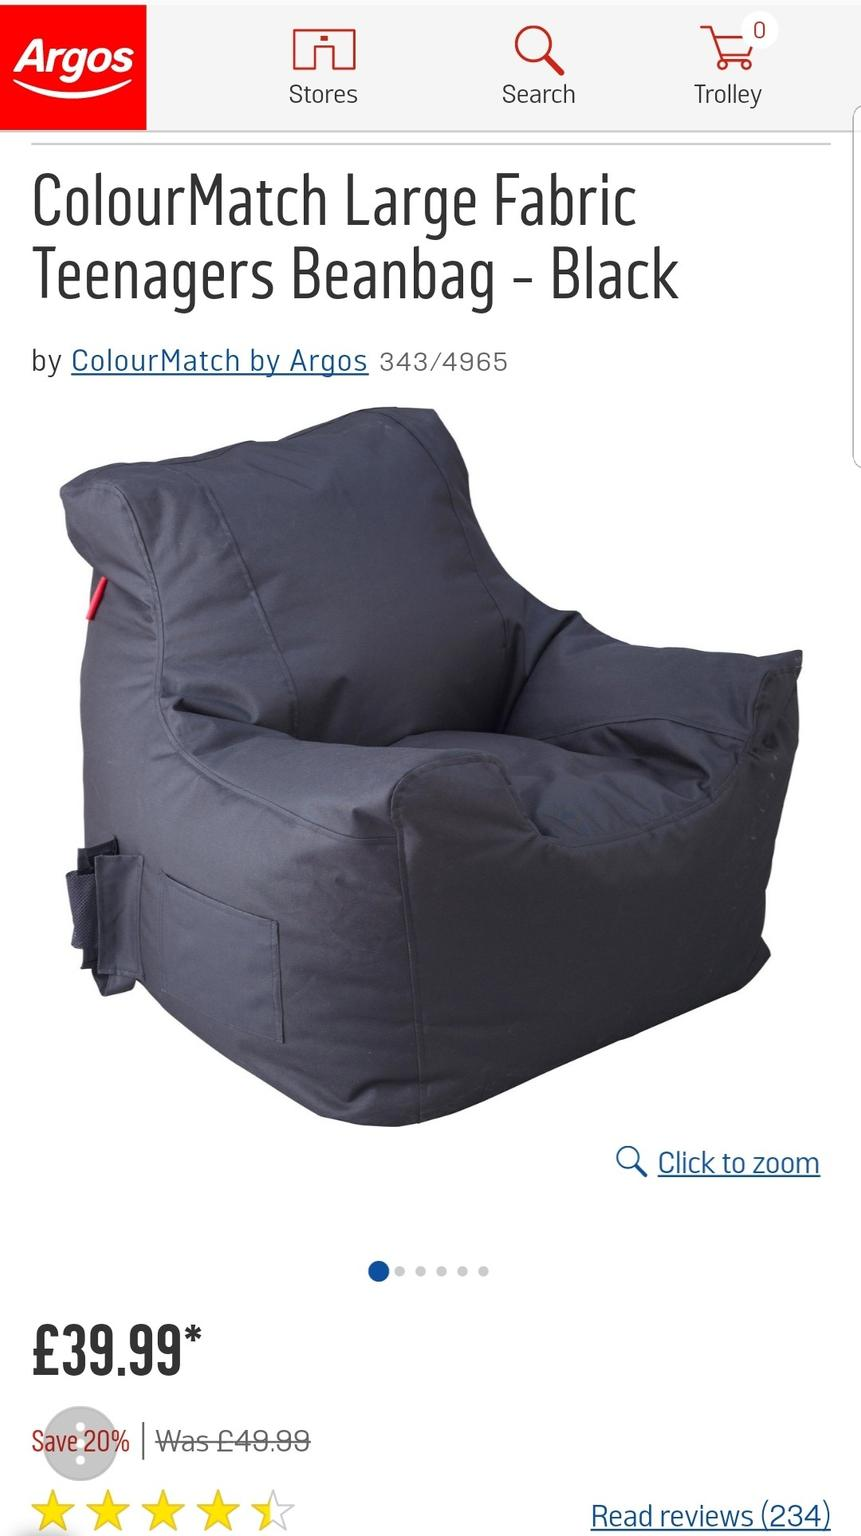 Pleasing Nearly New Bean Bag Chair X2 From Argos Squirreltailoven Fun Painted Chair Ideas Images Squirreltailovenorg